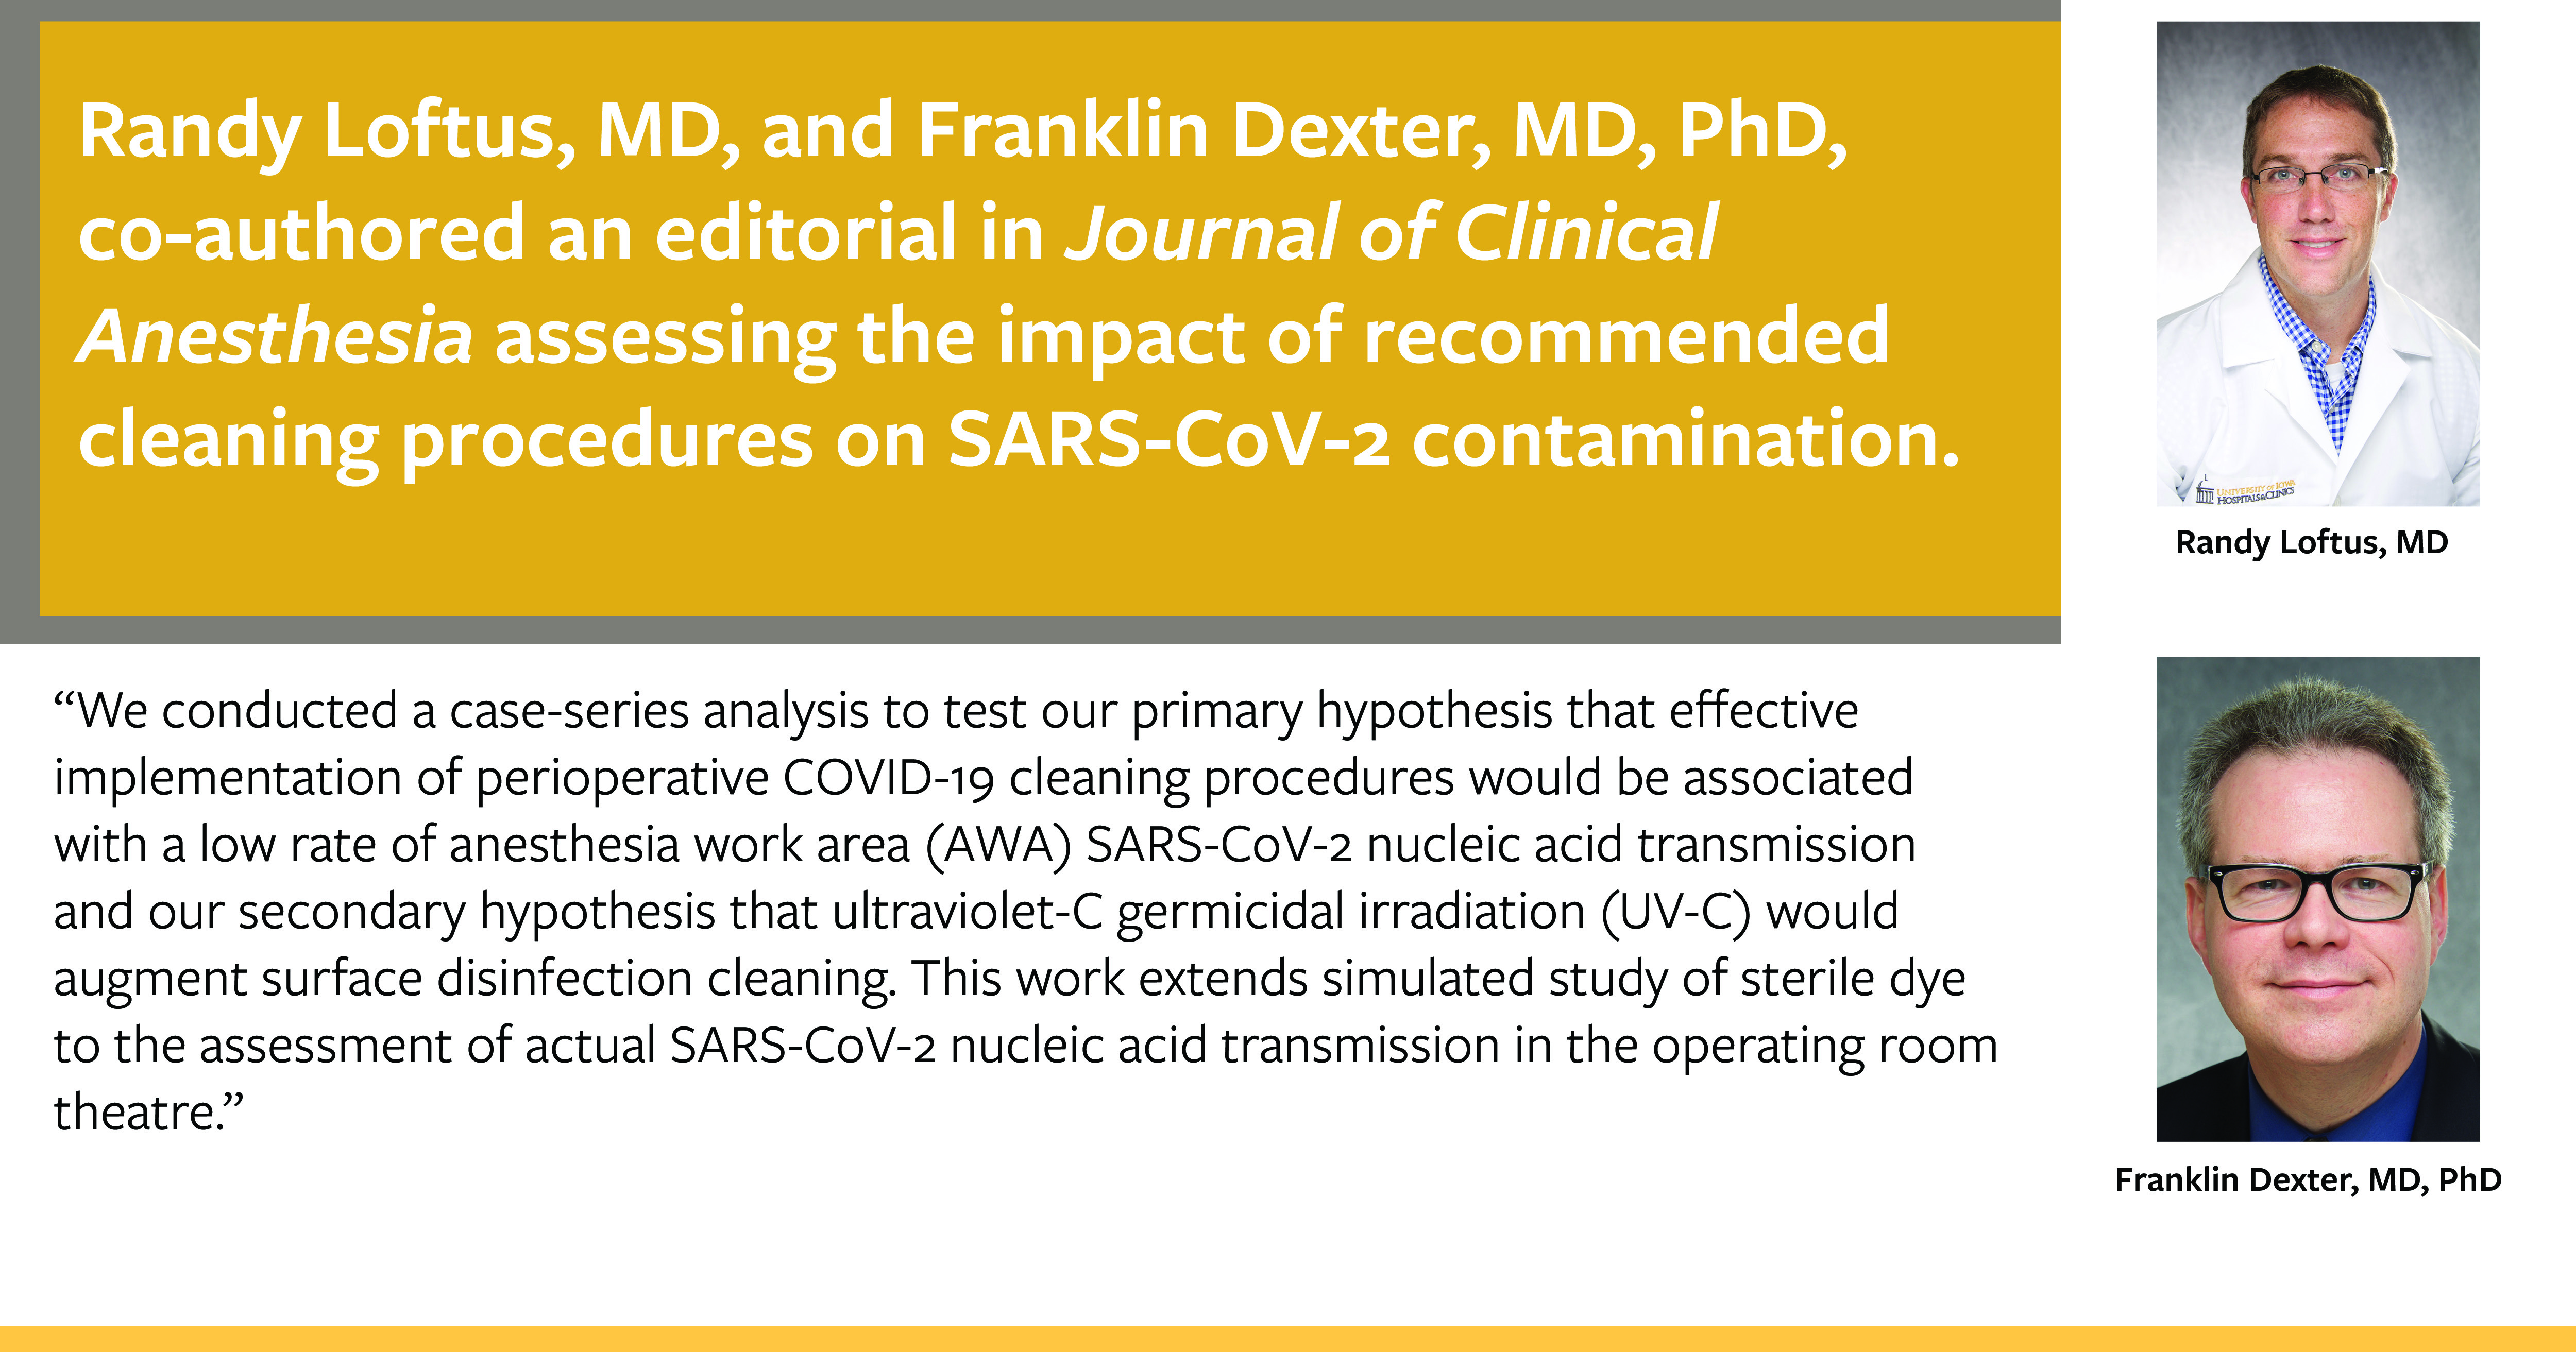 Drs. Loftus and Dexter co-authored an editorial regarding disinfecting for COVID-19